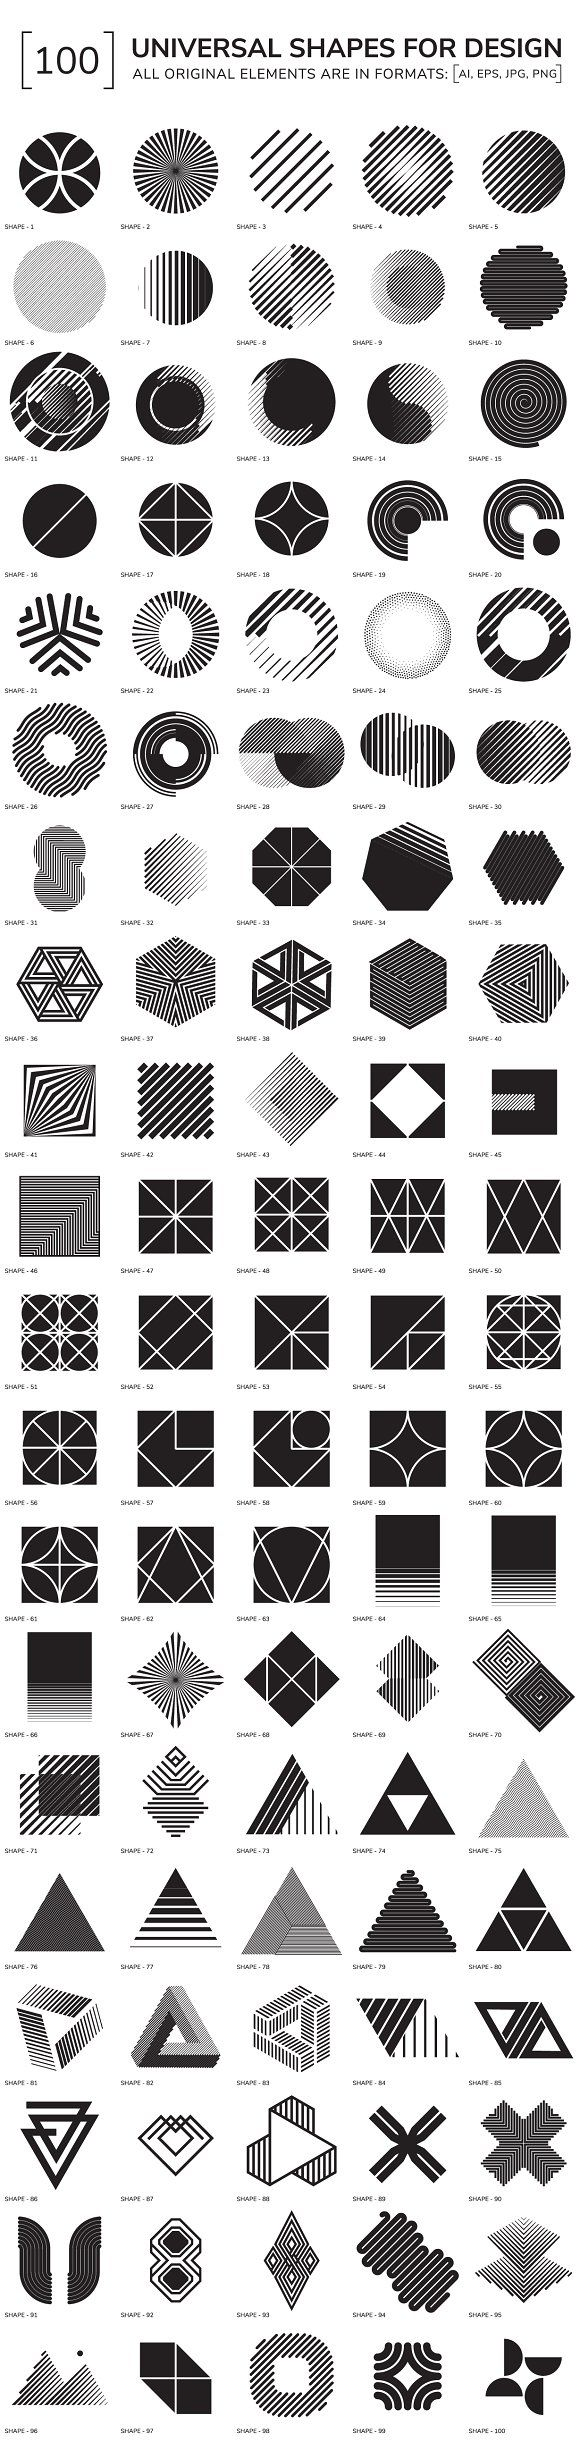 Posted in misc designs - 100 Geometric Shapes